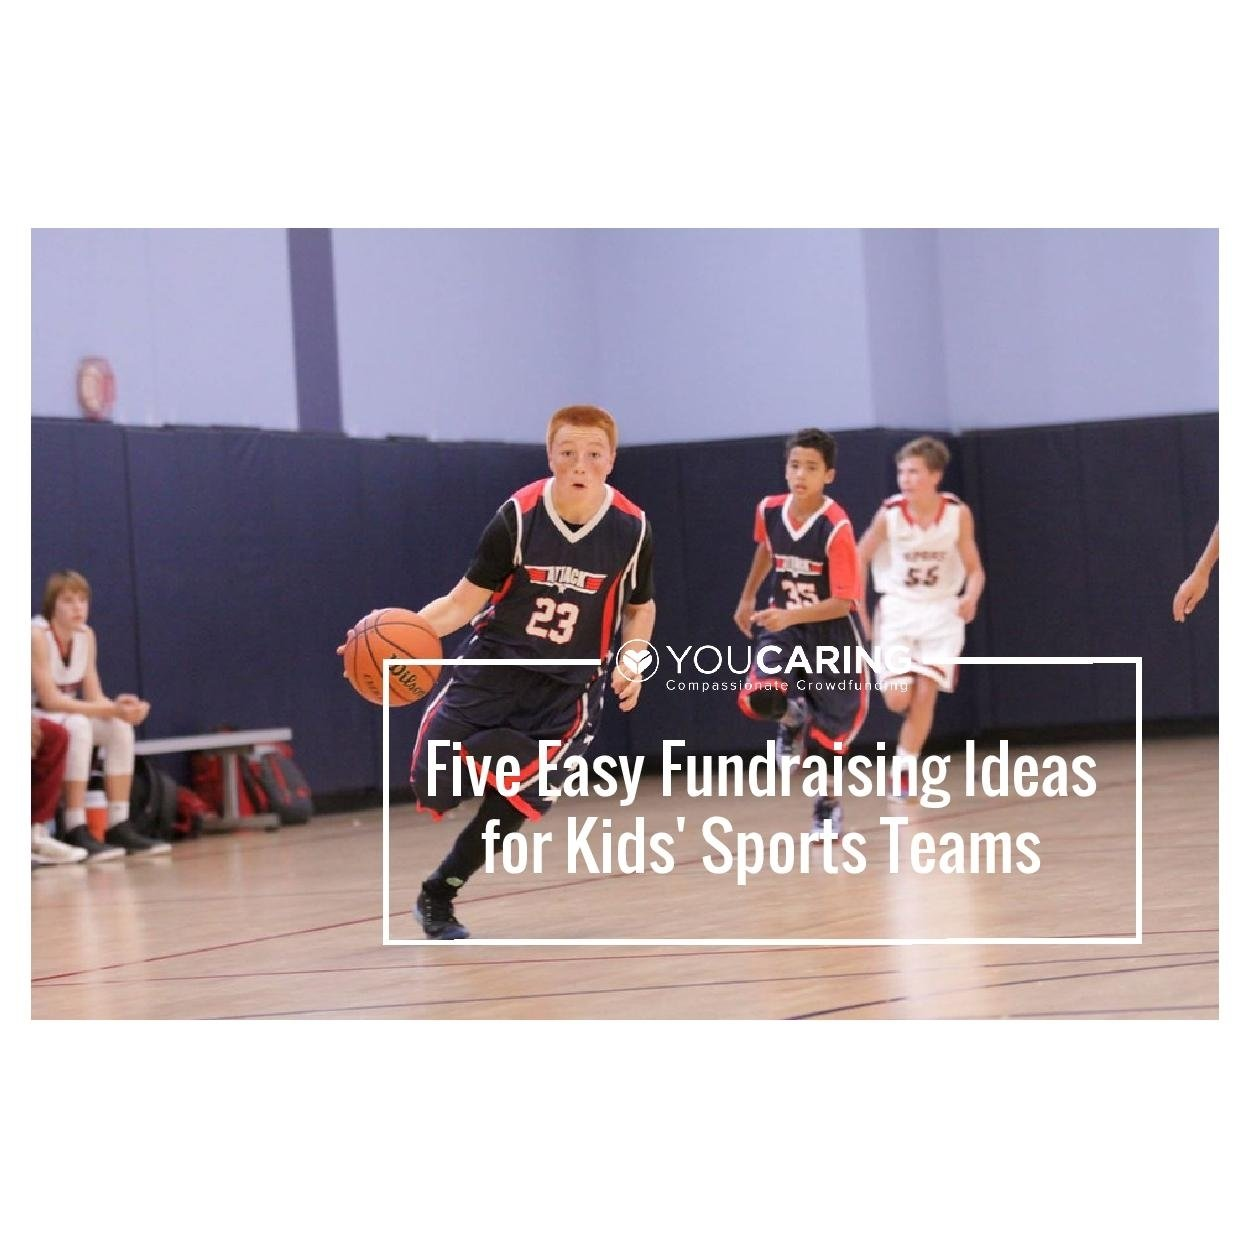 10 Amazing Easy Fundraising Ideas For Sports Teams five easy fundraising ideas for kids sports teams compassionate 4 2021